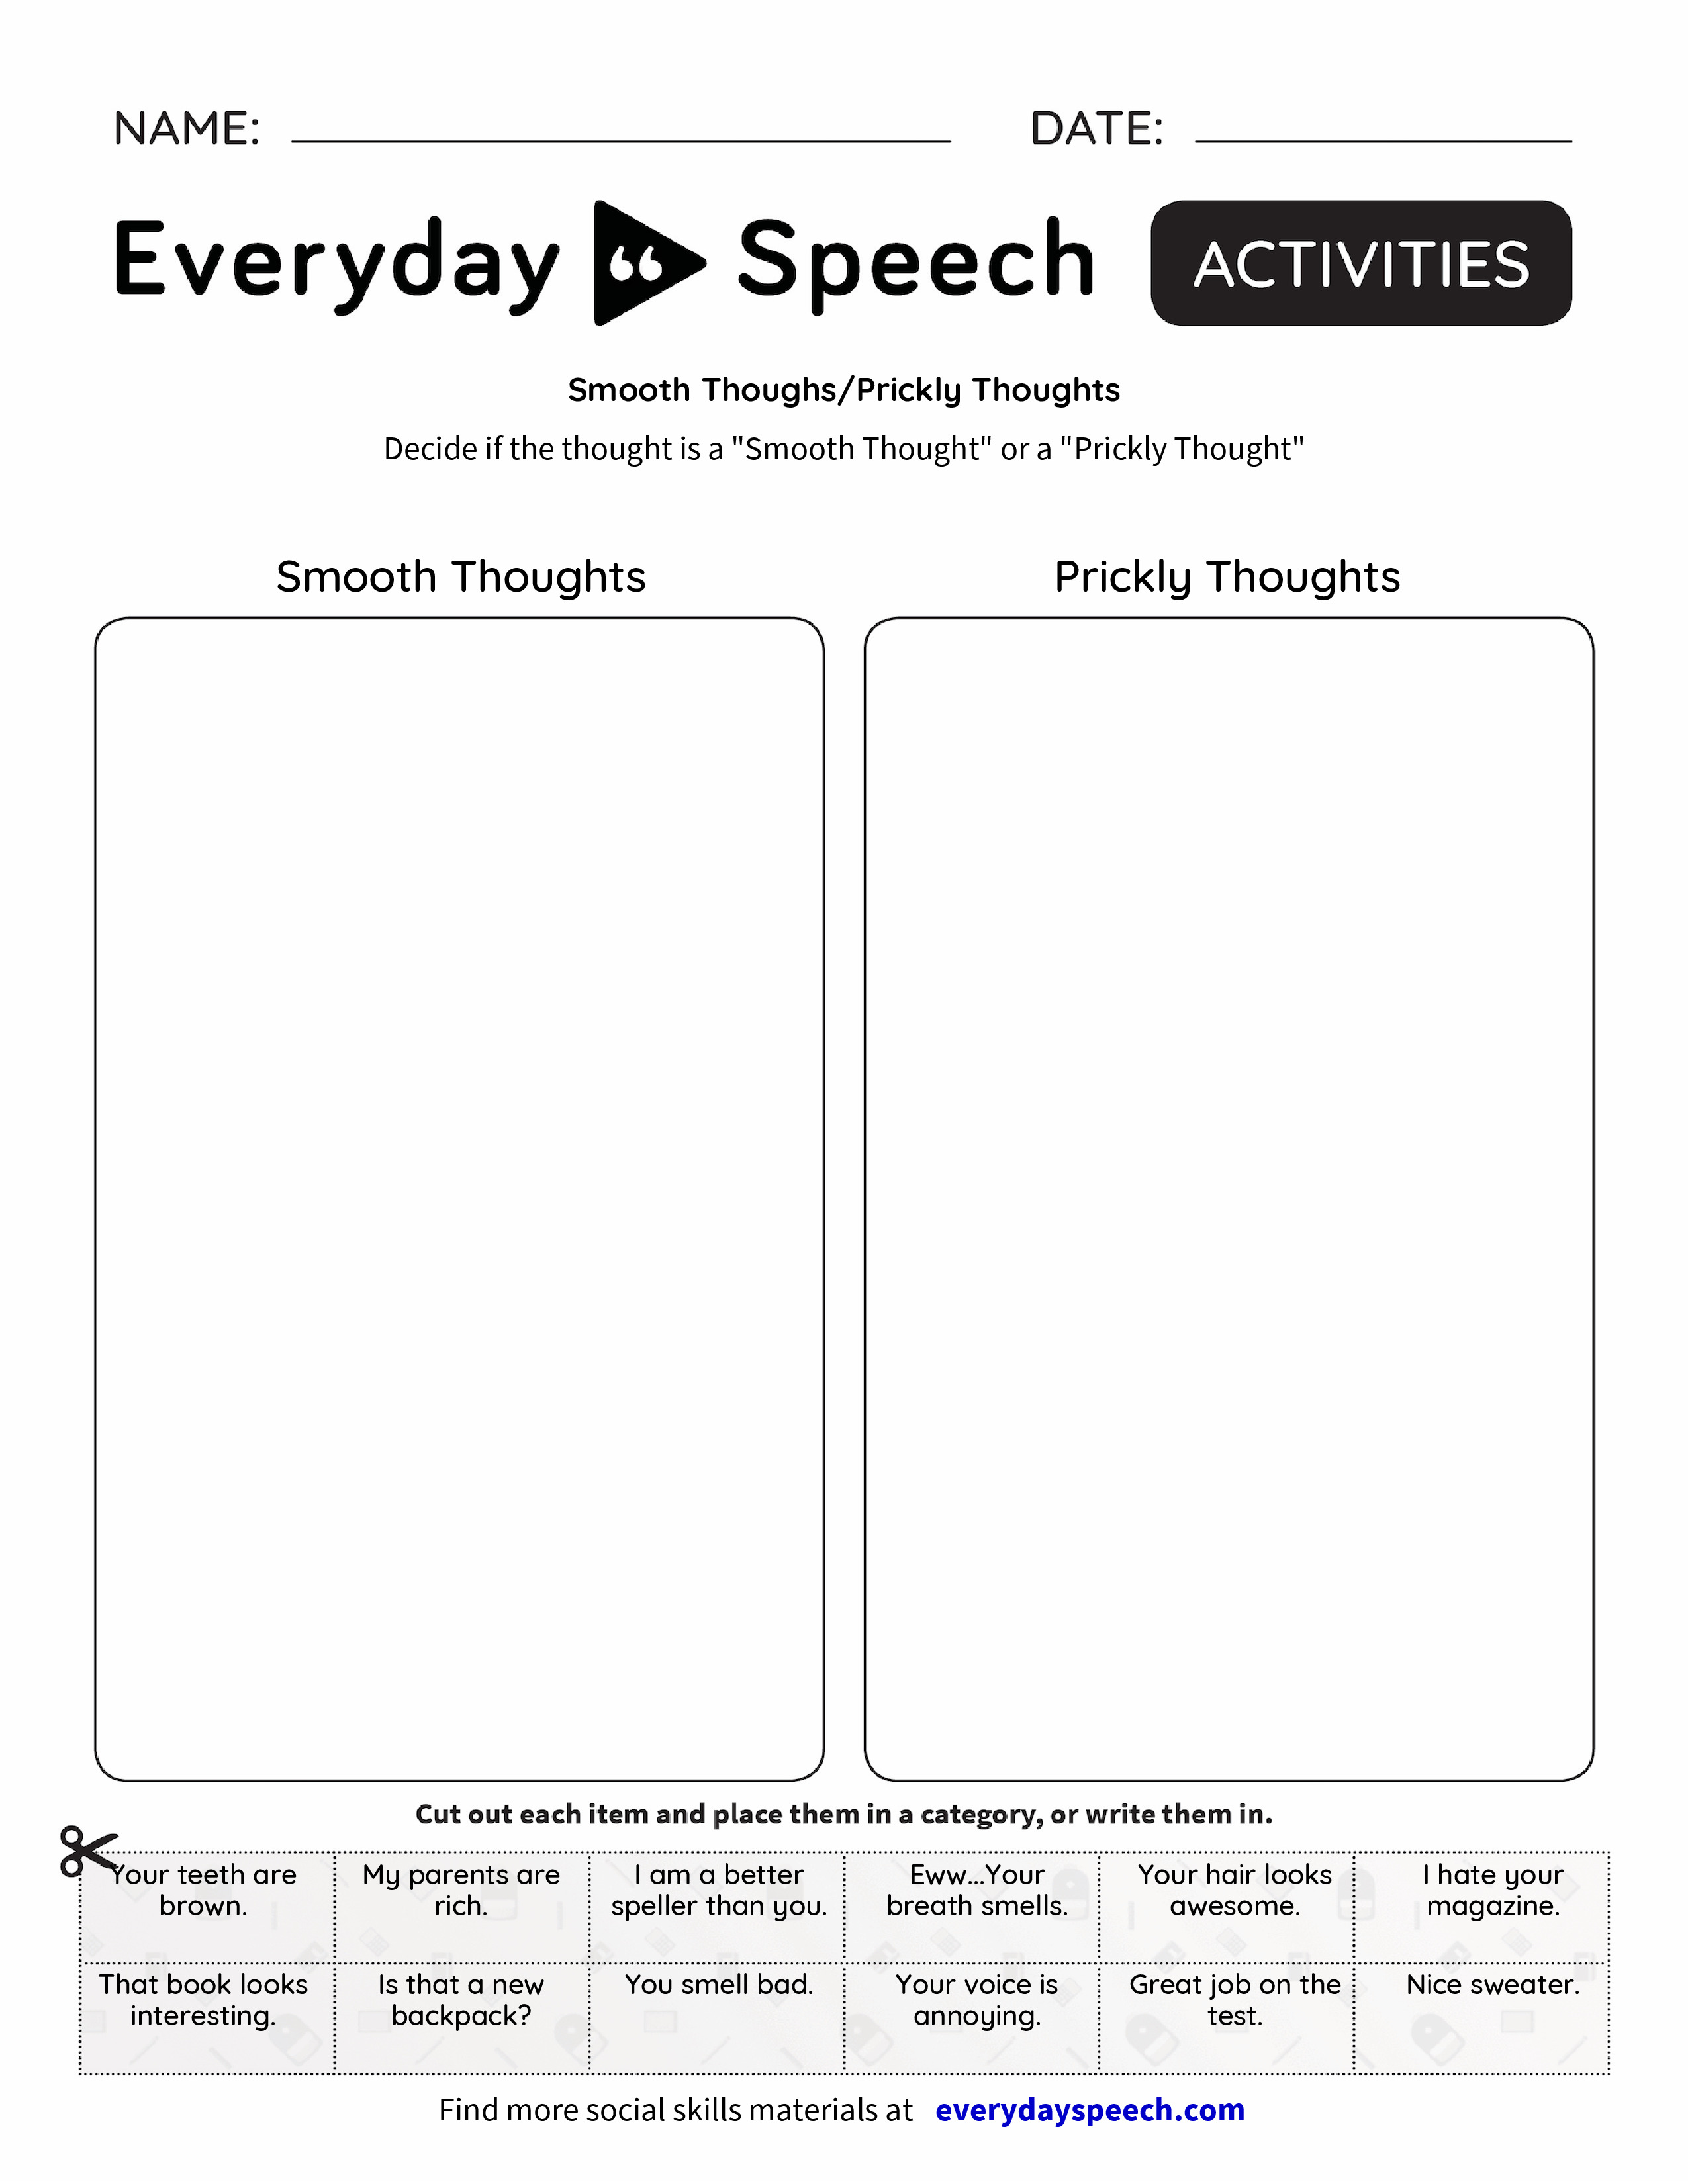 smooth thoughs prickly thoughts everyday speech everyday speech